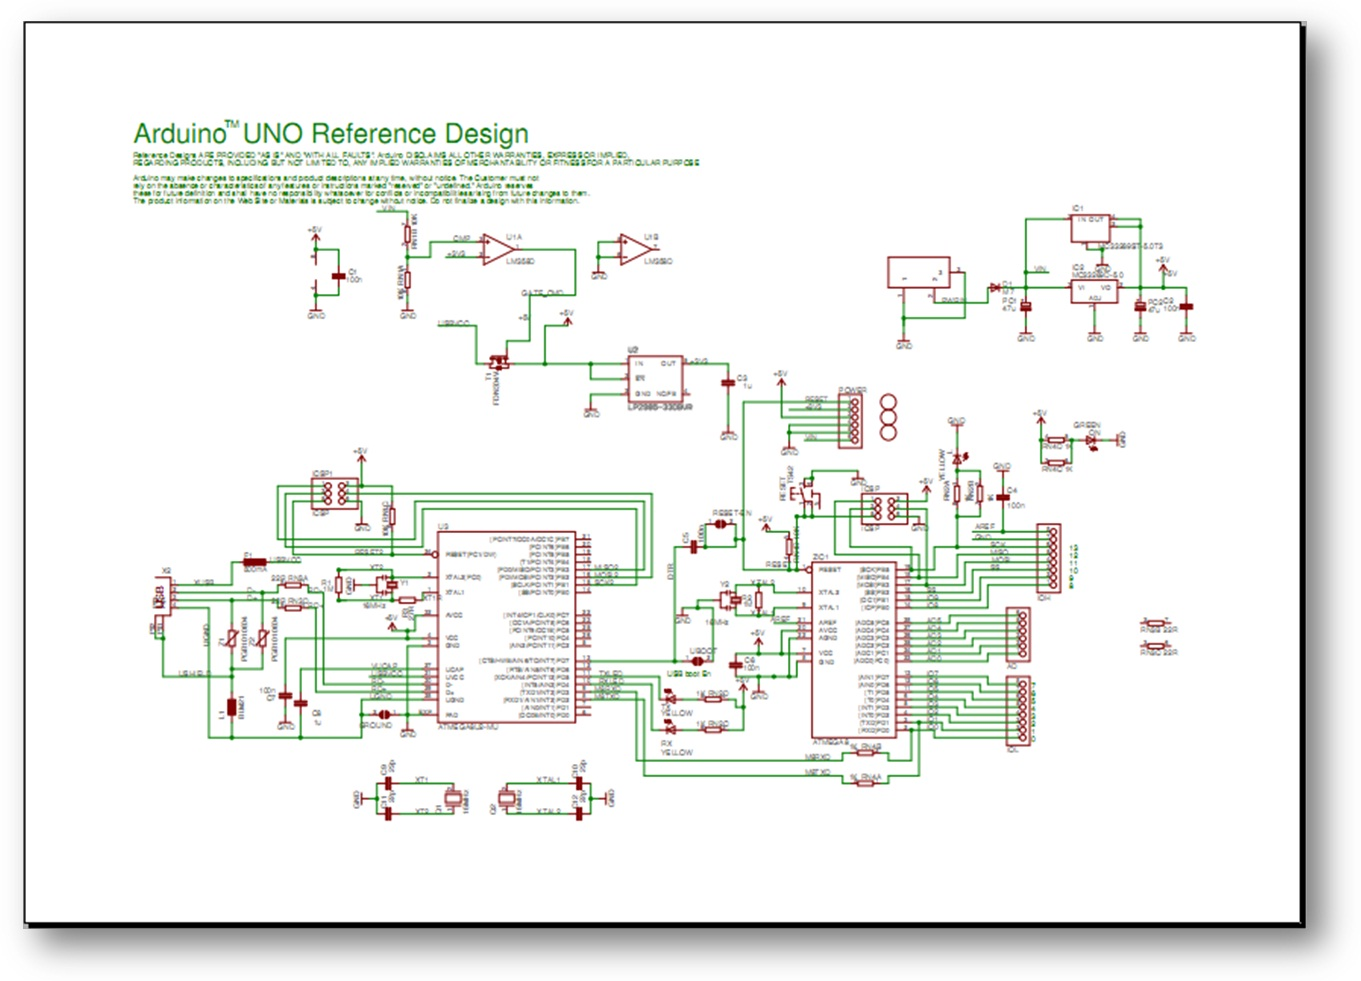 Basic arduino uno r pinout poster available soon